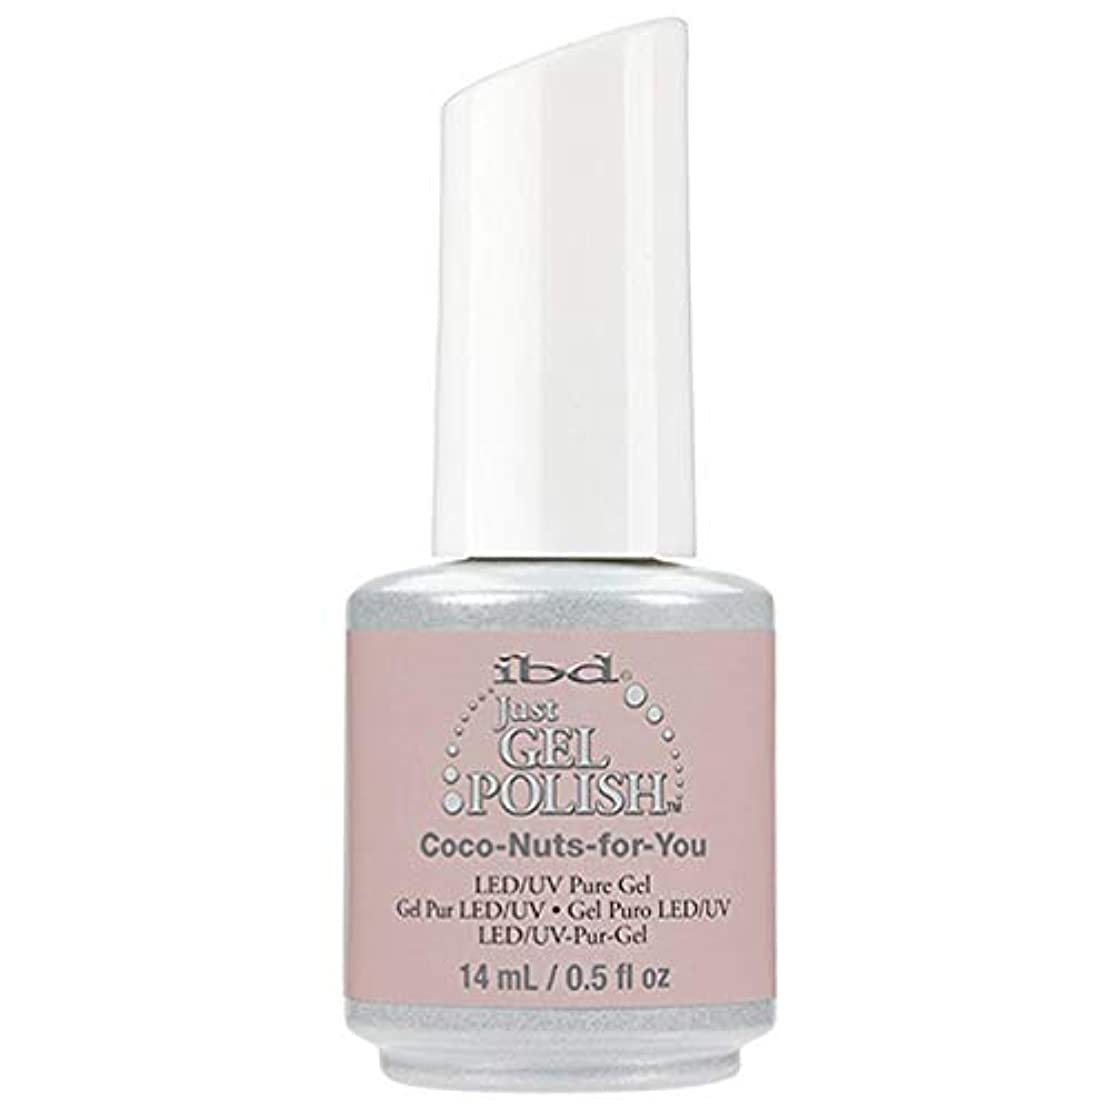 ケントポップ地雷原ibd Just Gel Nail Polish - Coco-Nuts-for-You - 14ml / 0.5oz